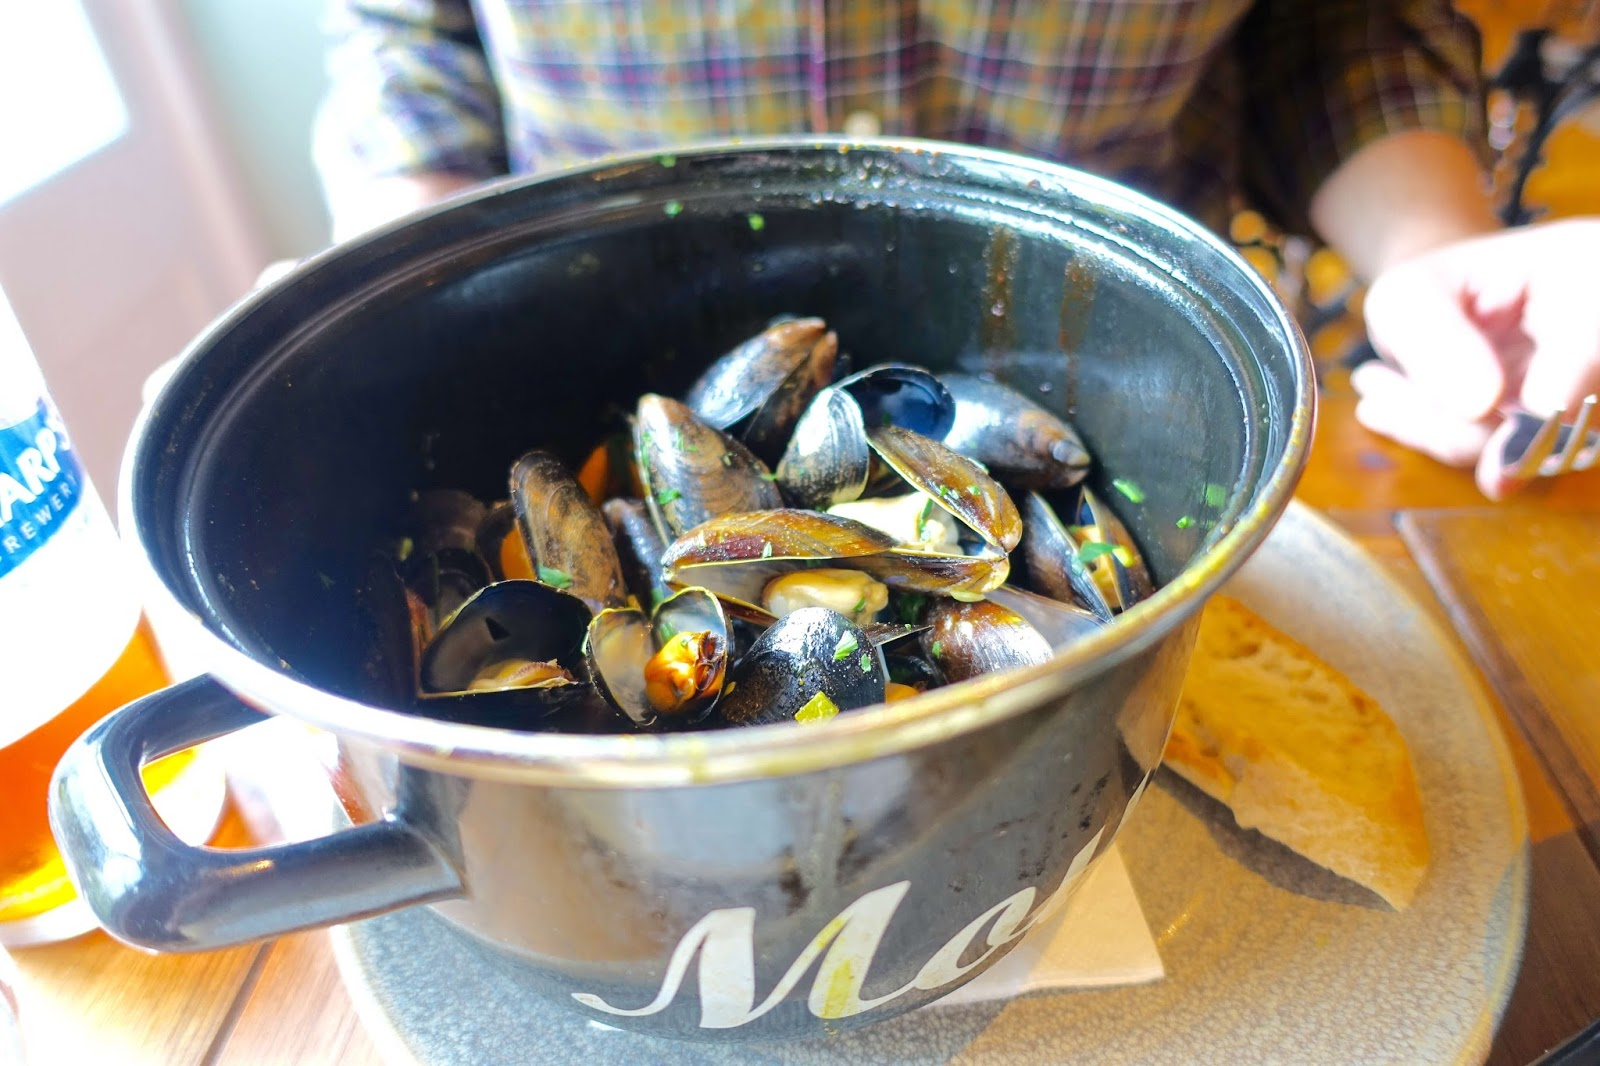 British rope-grown mussels steamed with marinière or saffron mouclade sauce